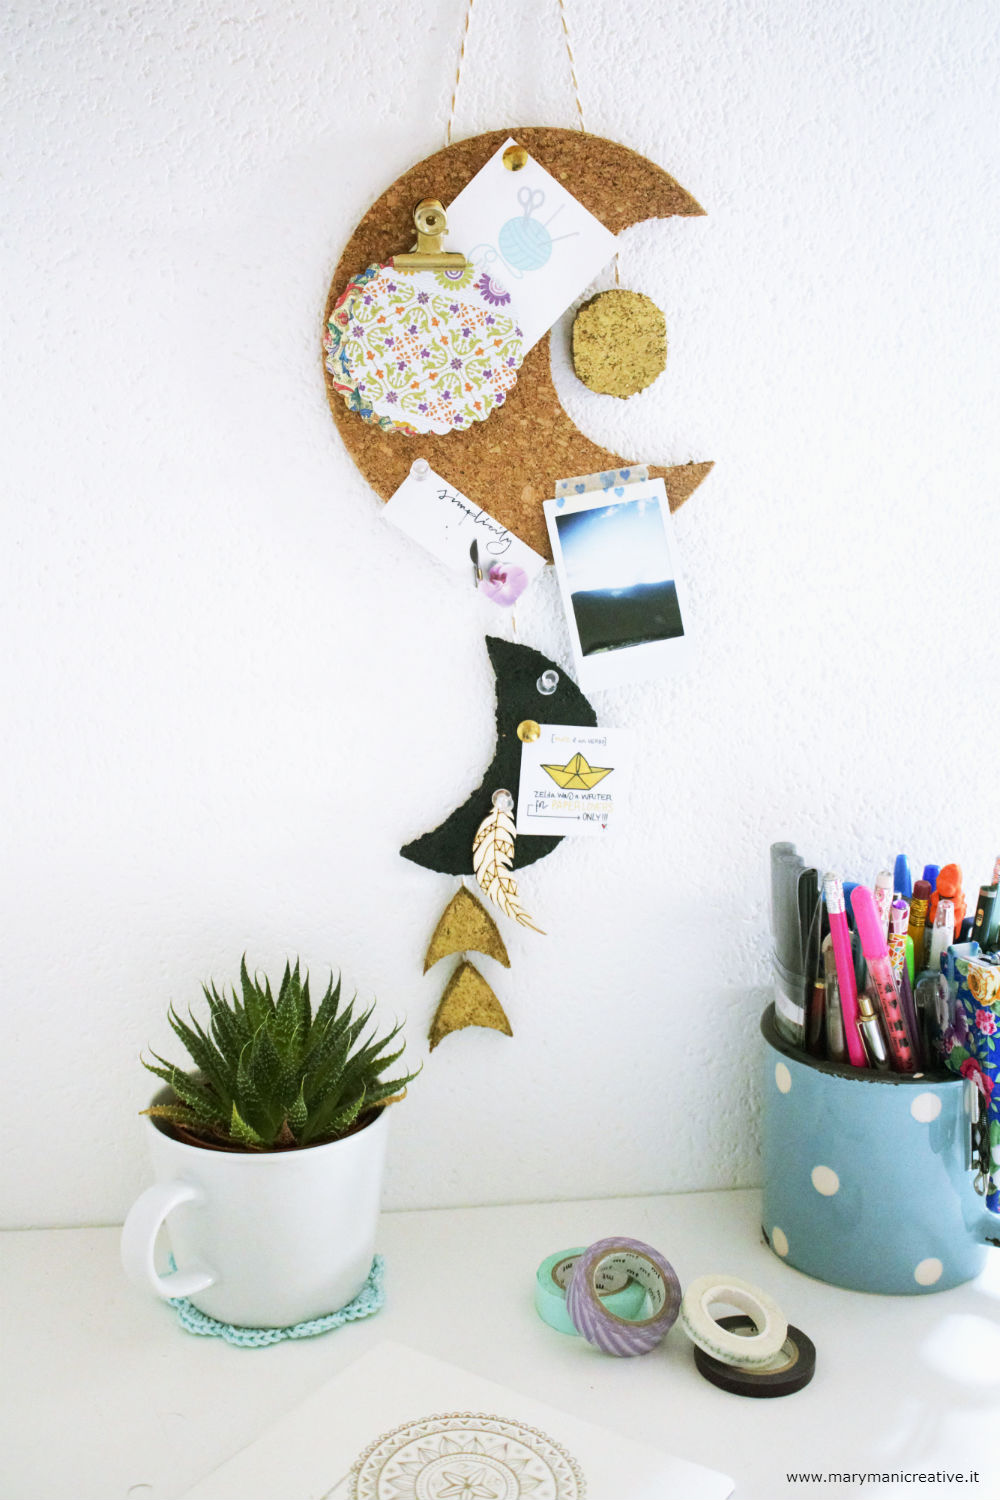 Come fare una Pinboard lunare in sughero DIY